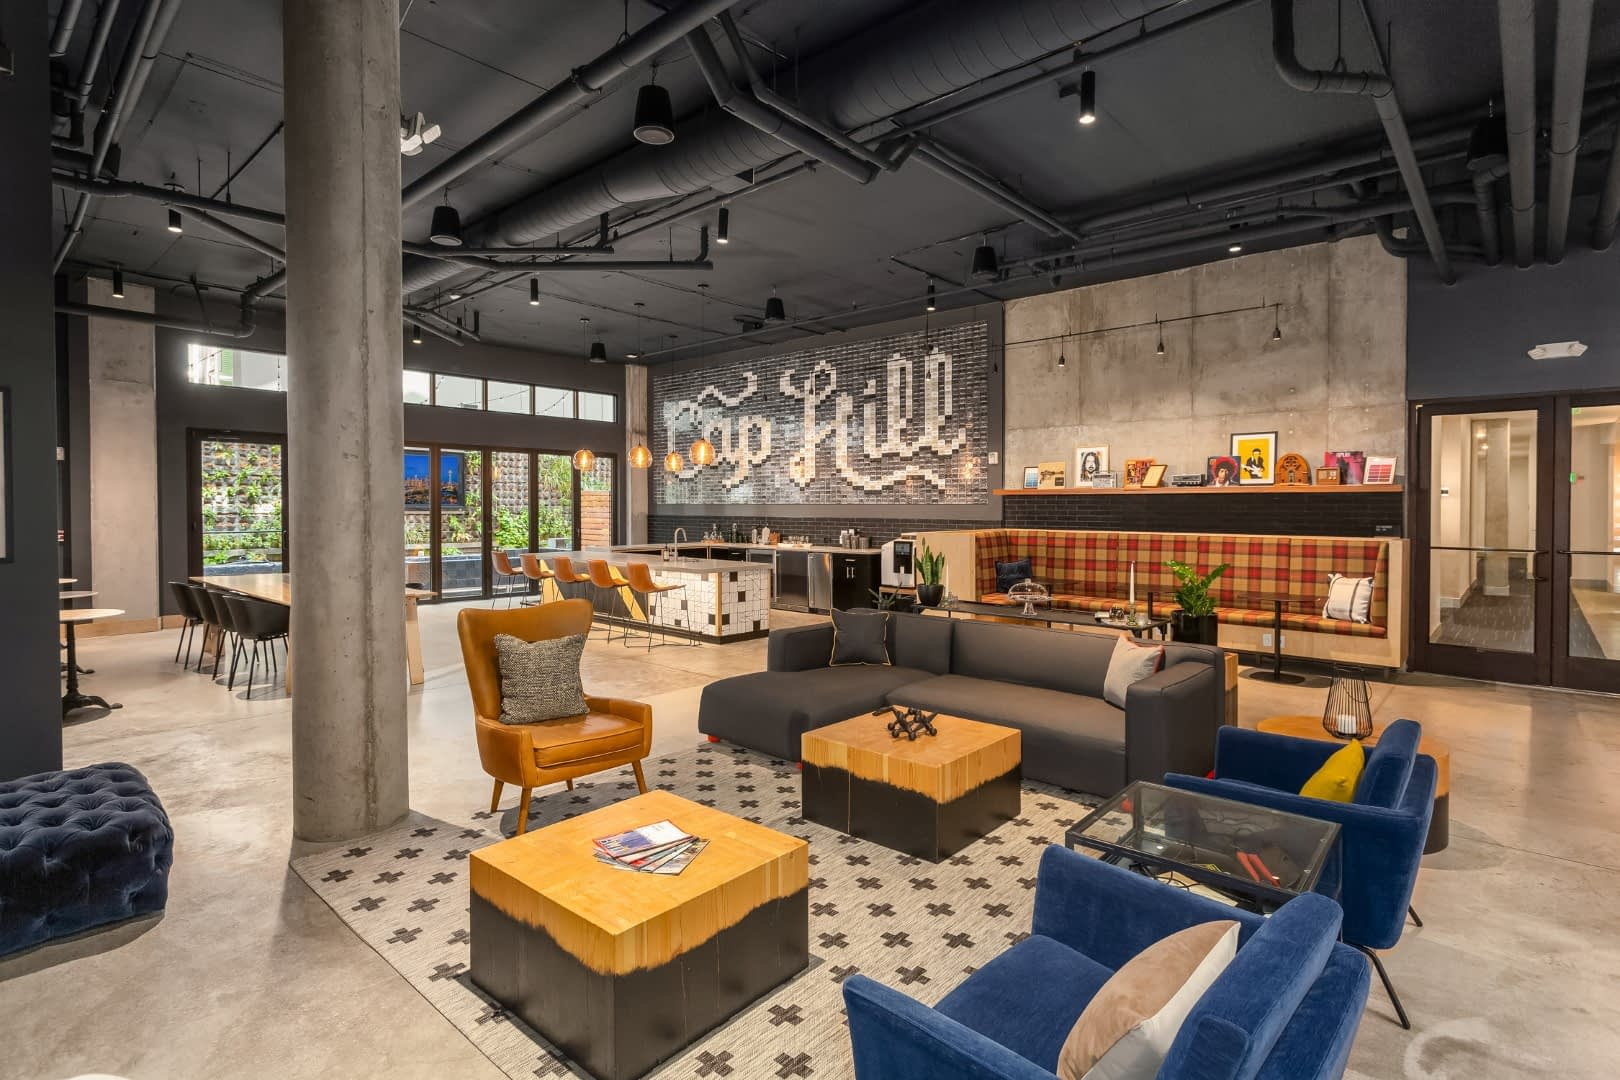 The social lounge at Jack apartments has plenty of seating and decorations